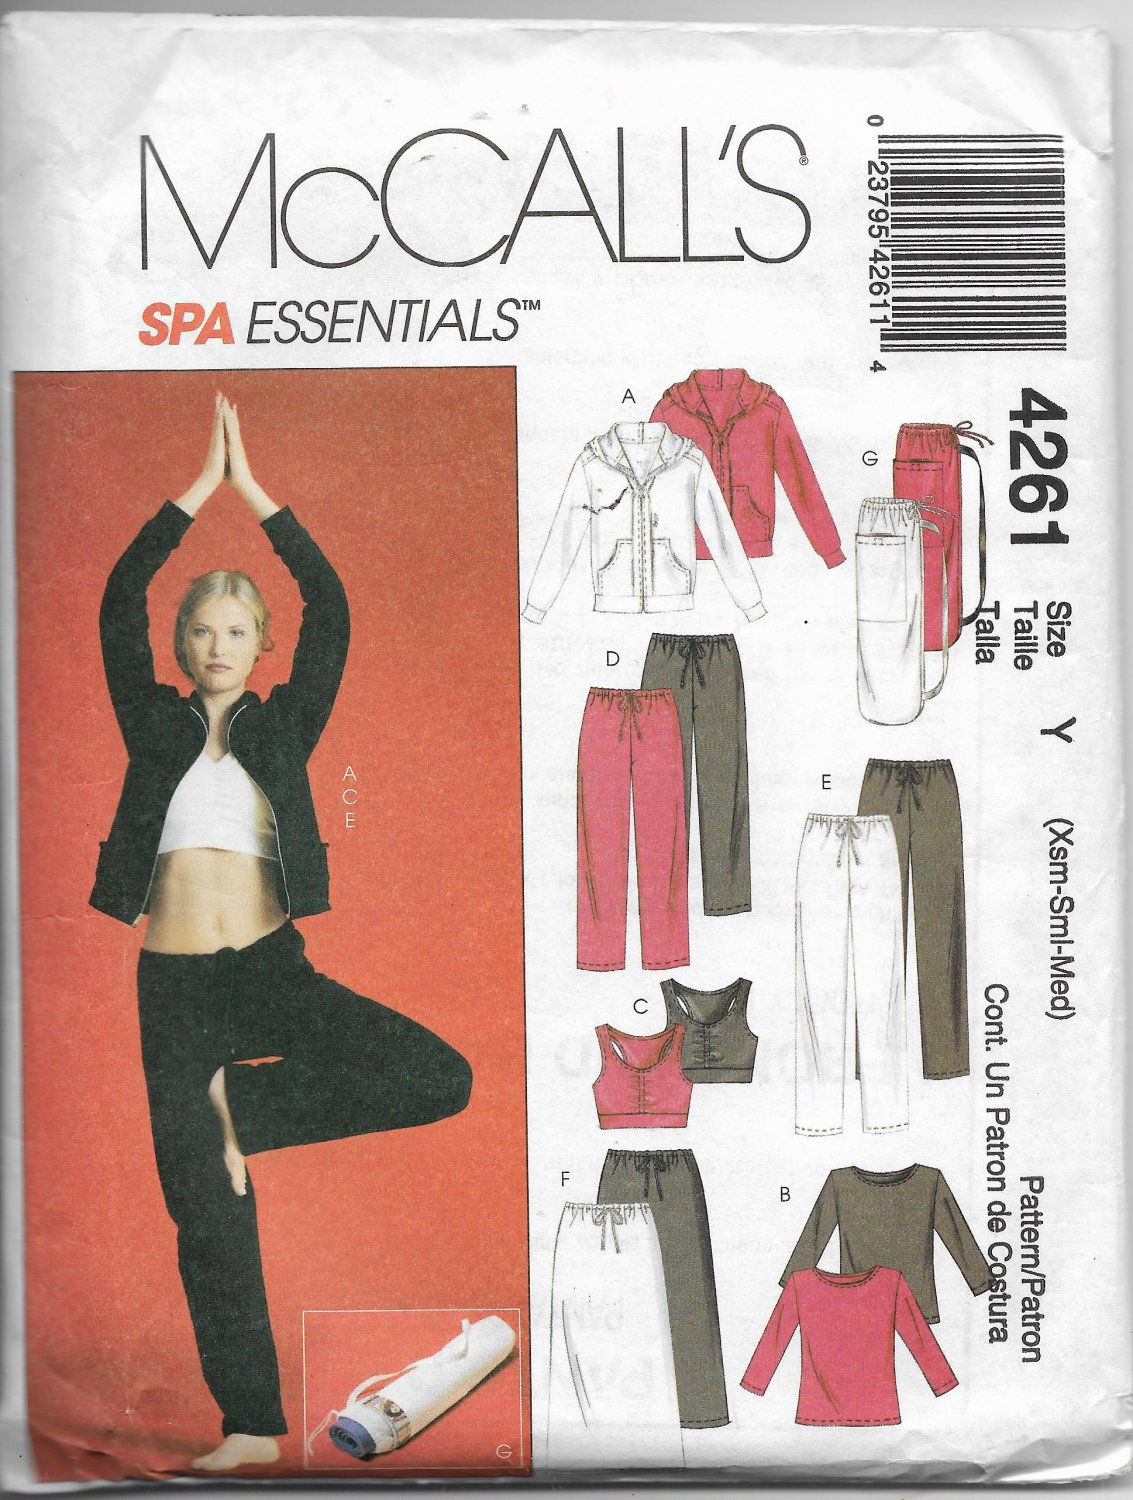 McCalls 4261 Leisure Wear Women Tops Jackets Pants Shorts Skirt Sizes Xs - S - M